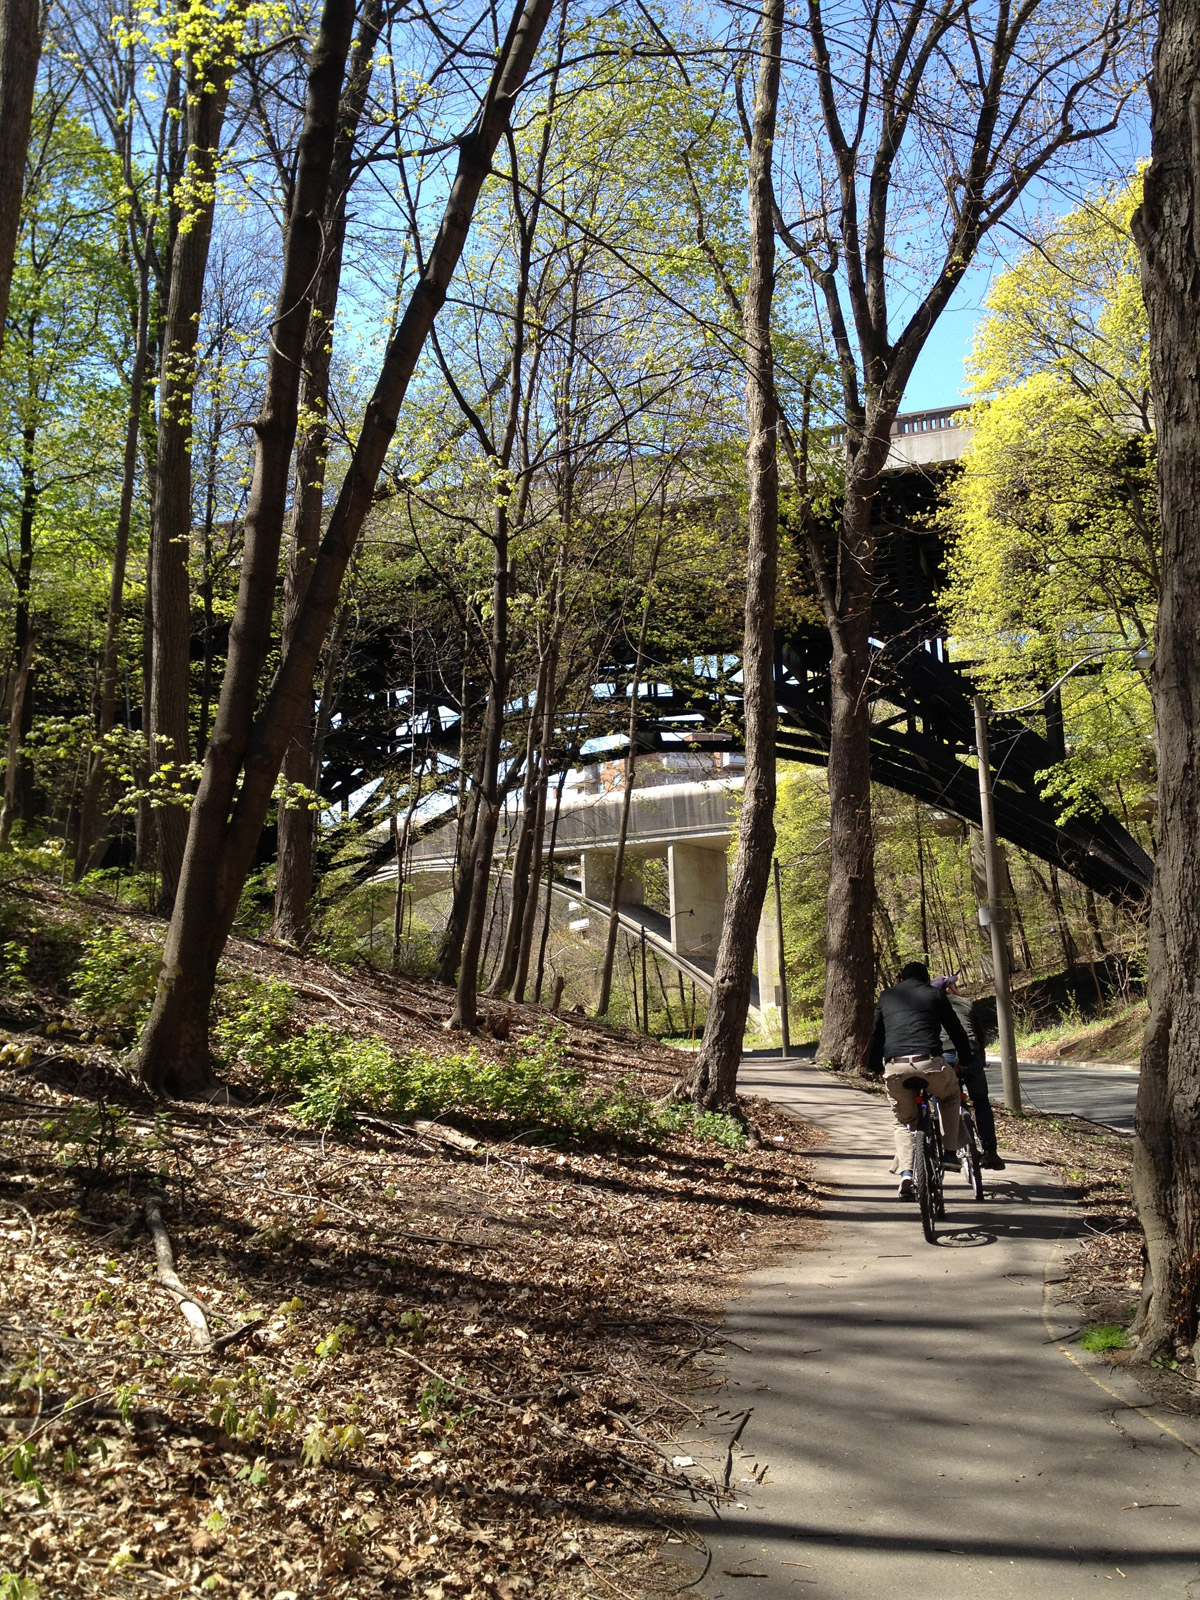 On Thursday July 18, 2013, Toronto city council approved a multi-use cycling and pedestrian path that will connect Toronto from Brampton to Scarborough.